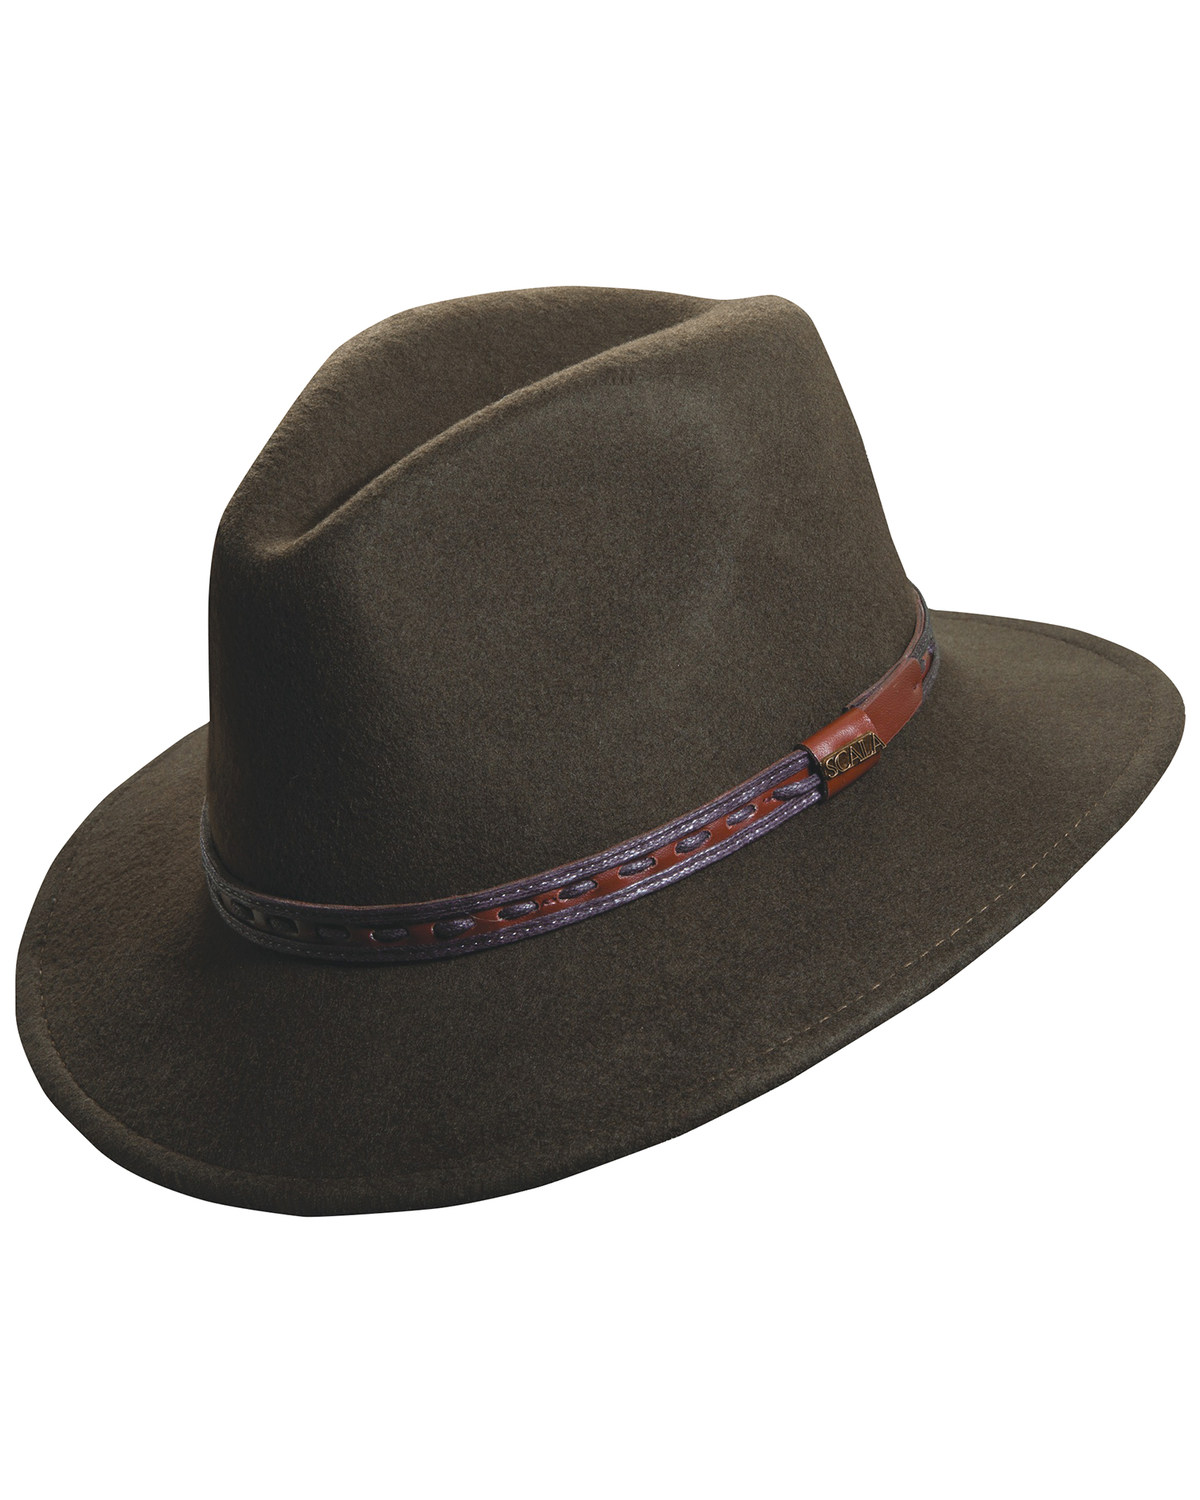 Scala Crushable Wool Outback Hat  97421465e7c